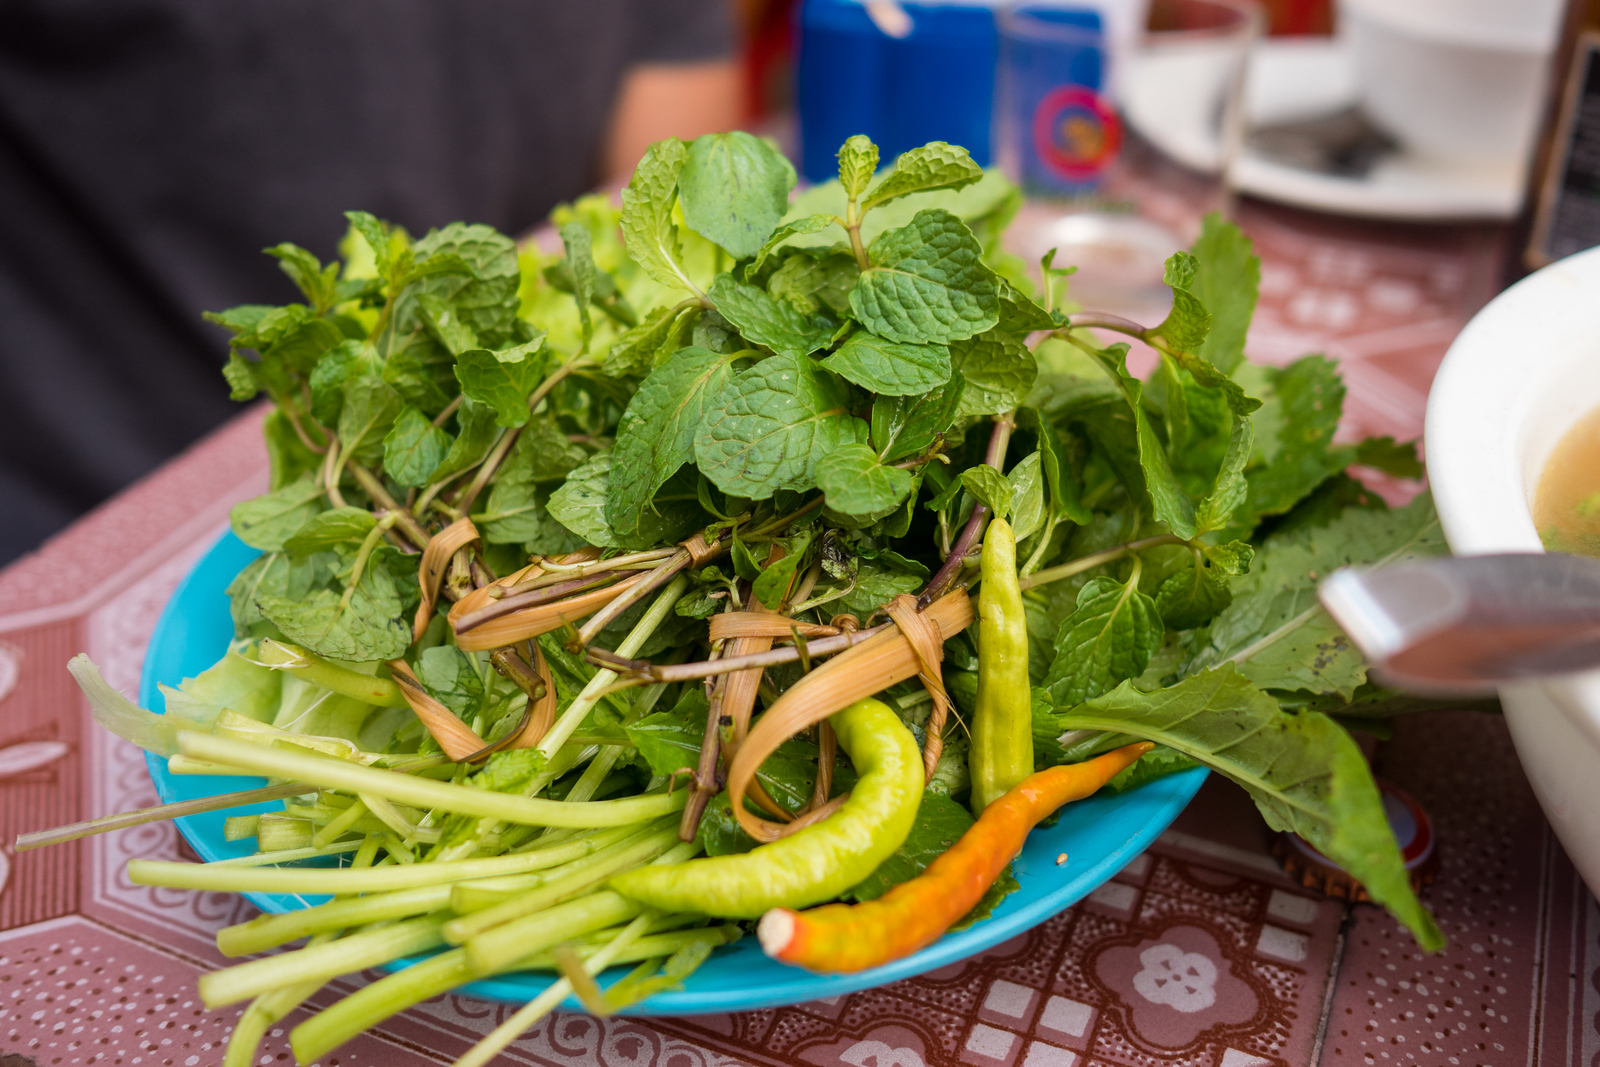 Laos Local Herbs and Hot Chilies